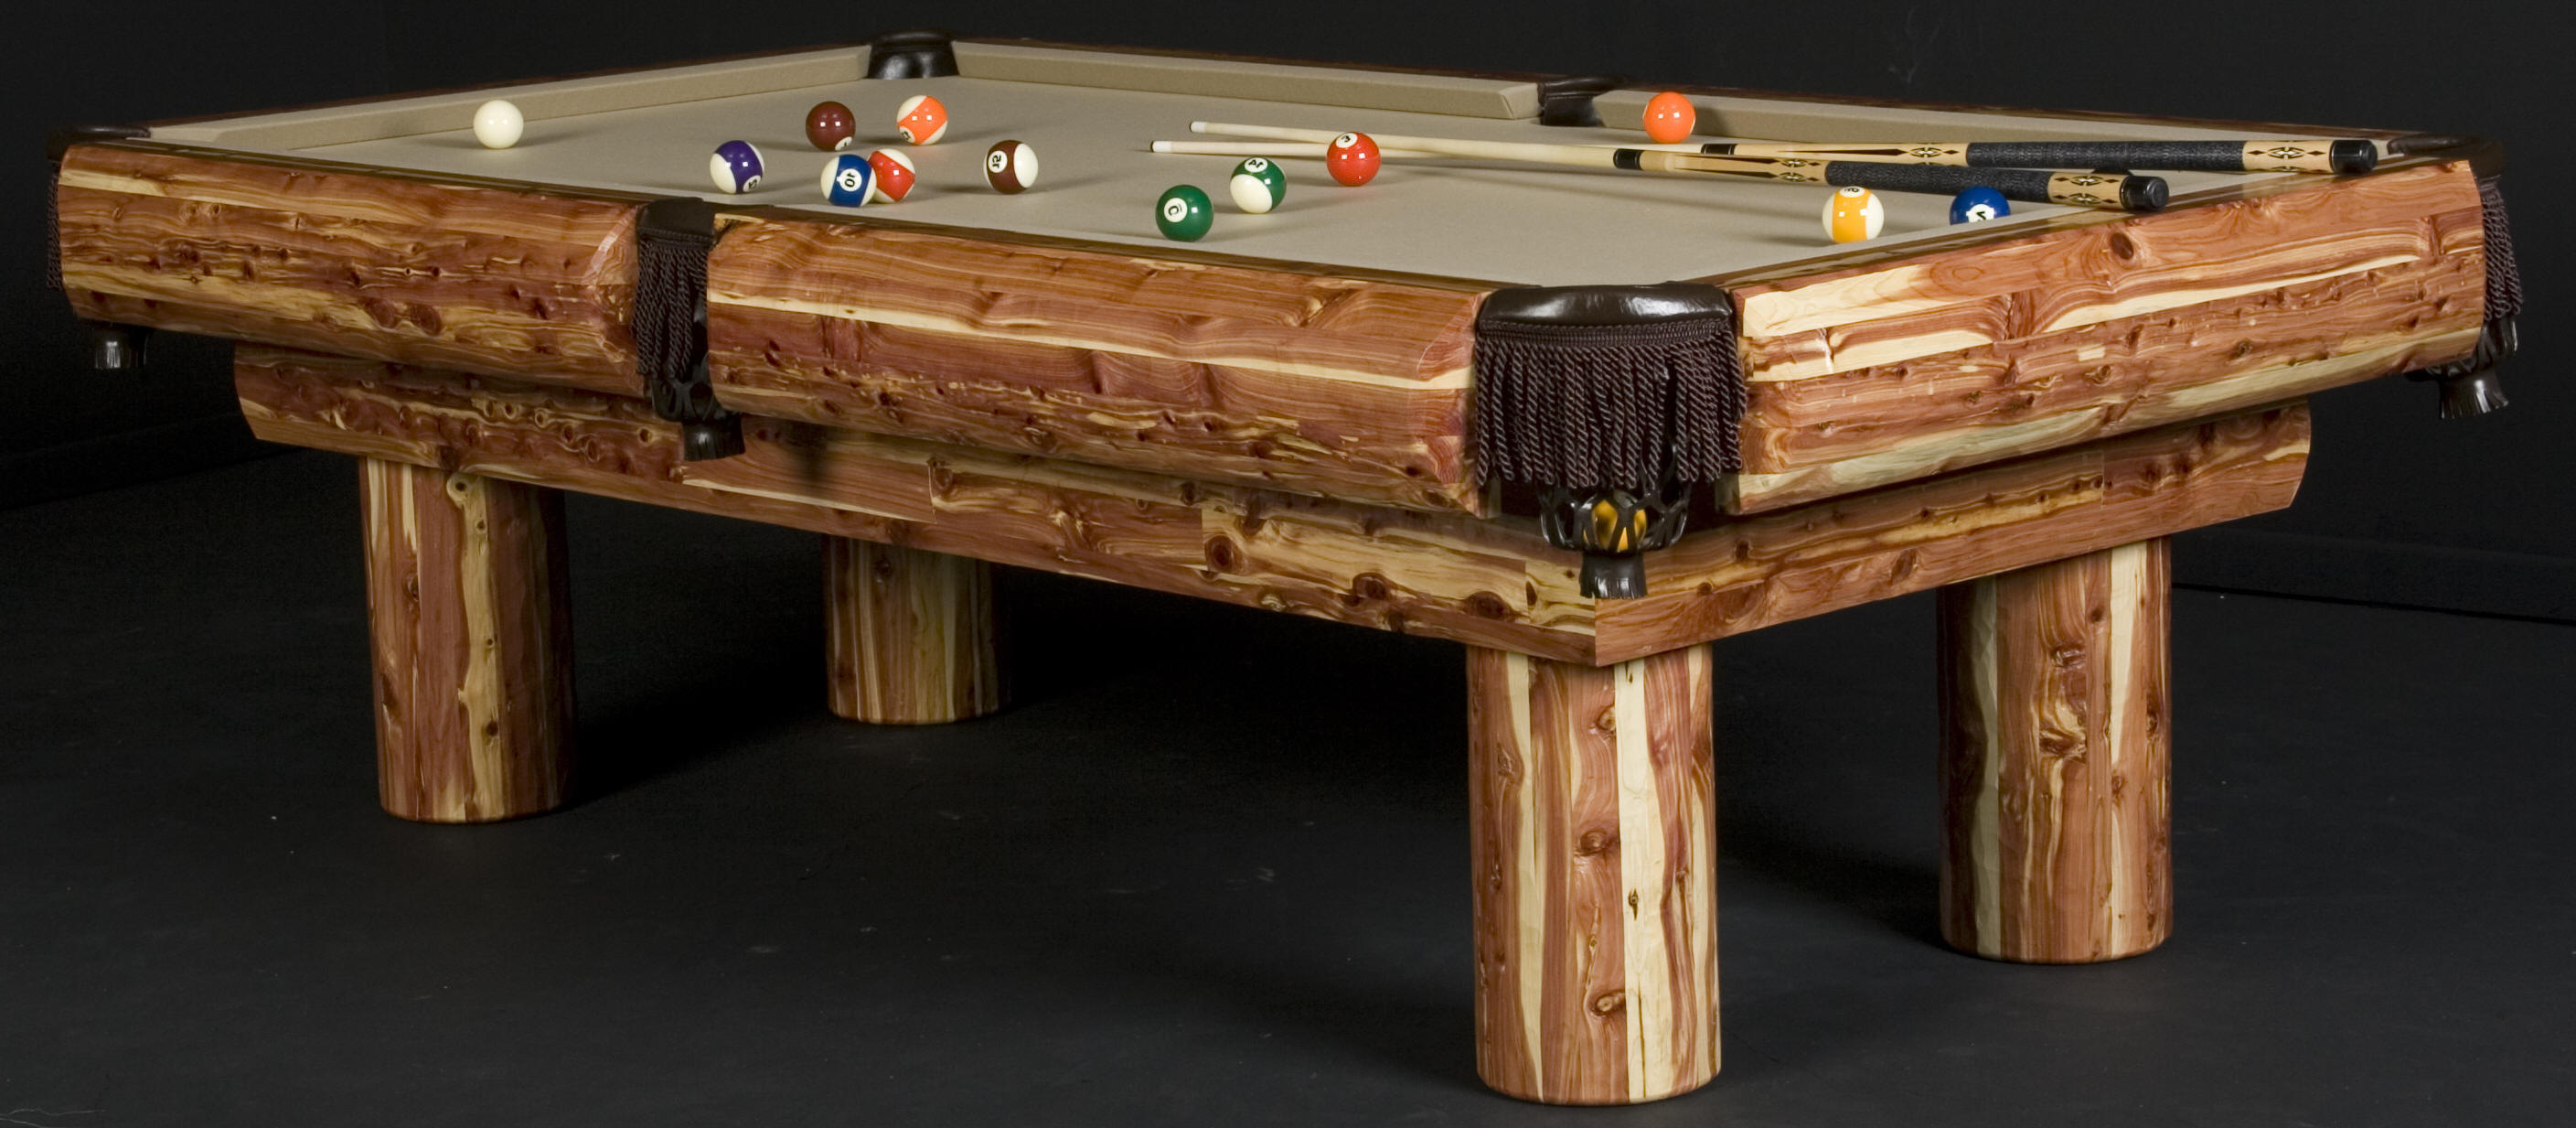 Wonderful unique pool table design homesfeed for Table table table